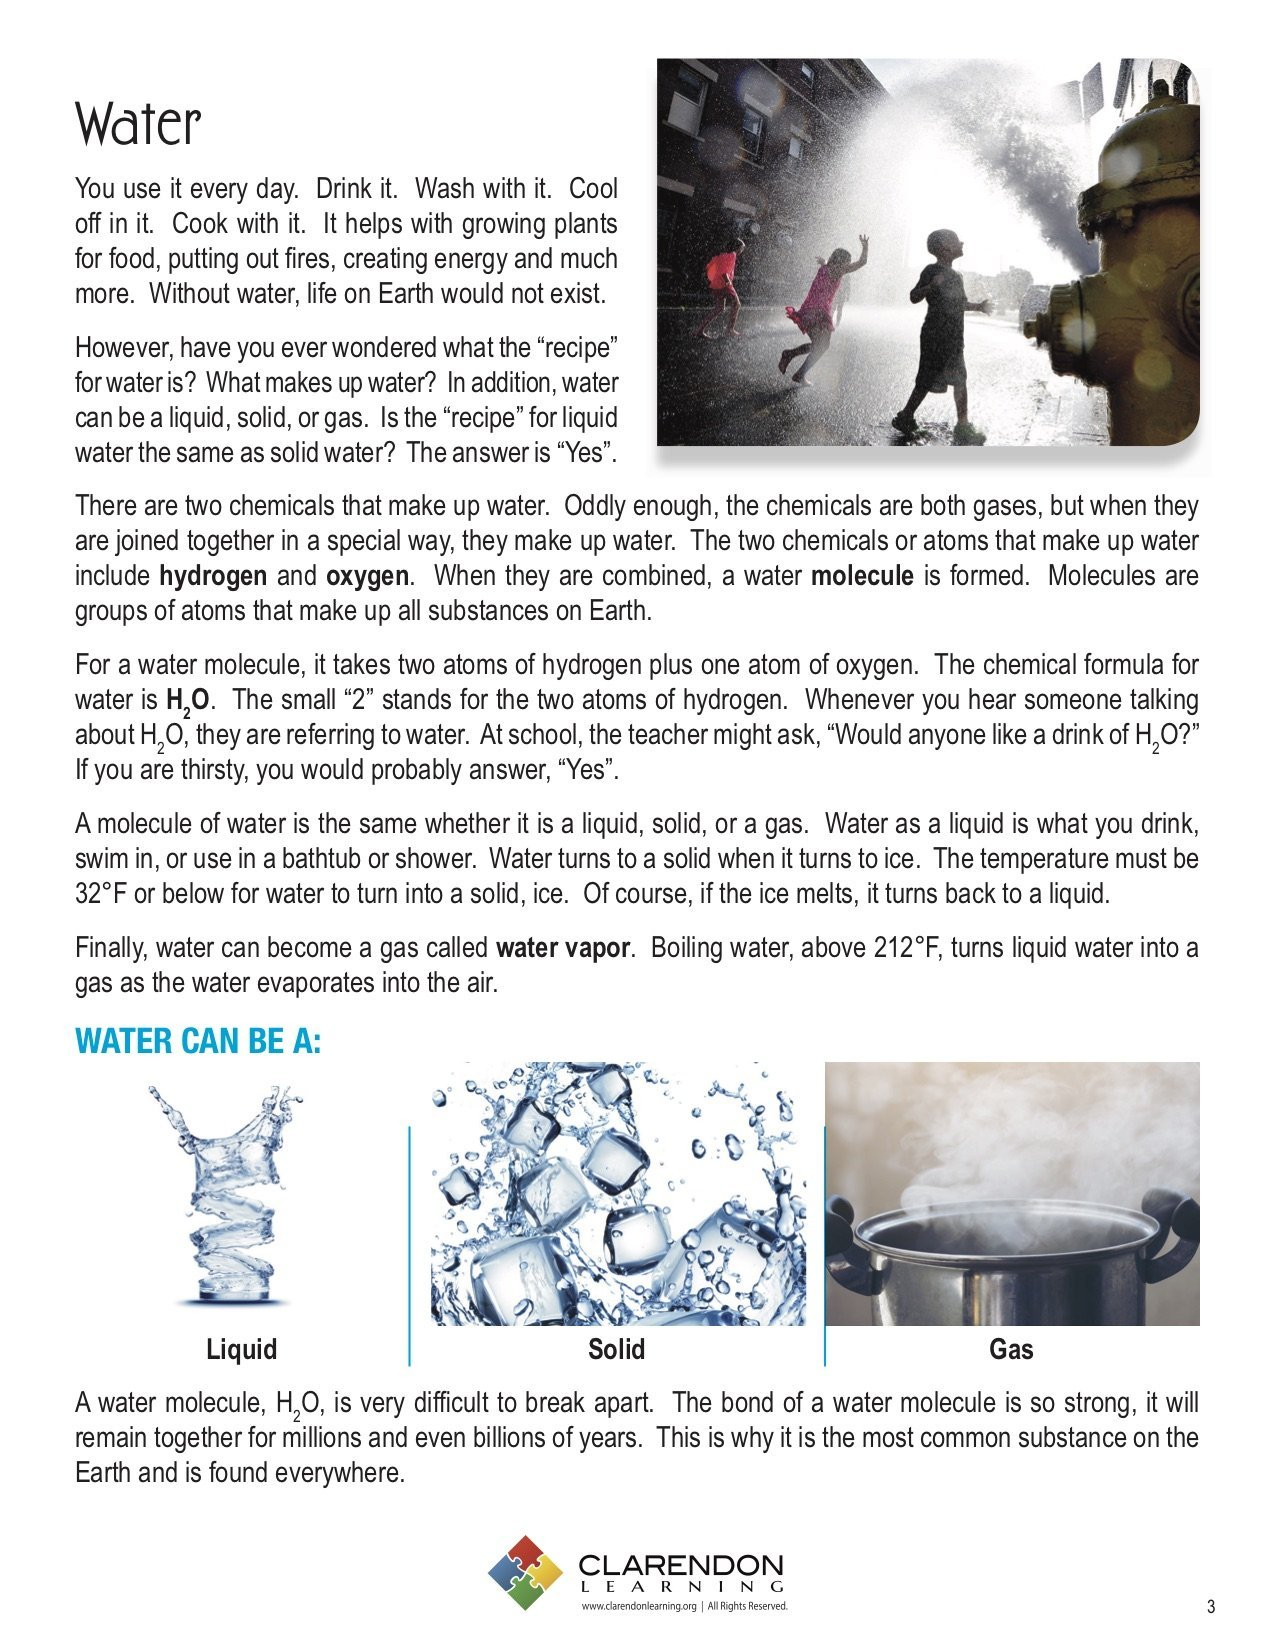 Water Water Everywhere Lesson Plan  Clarendon Learning Along With Water Water Everywhere Worksheet Answers